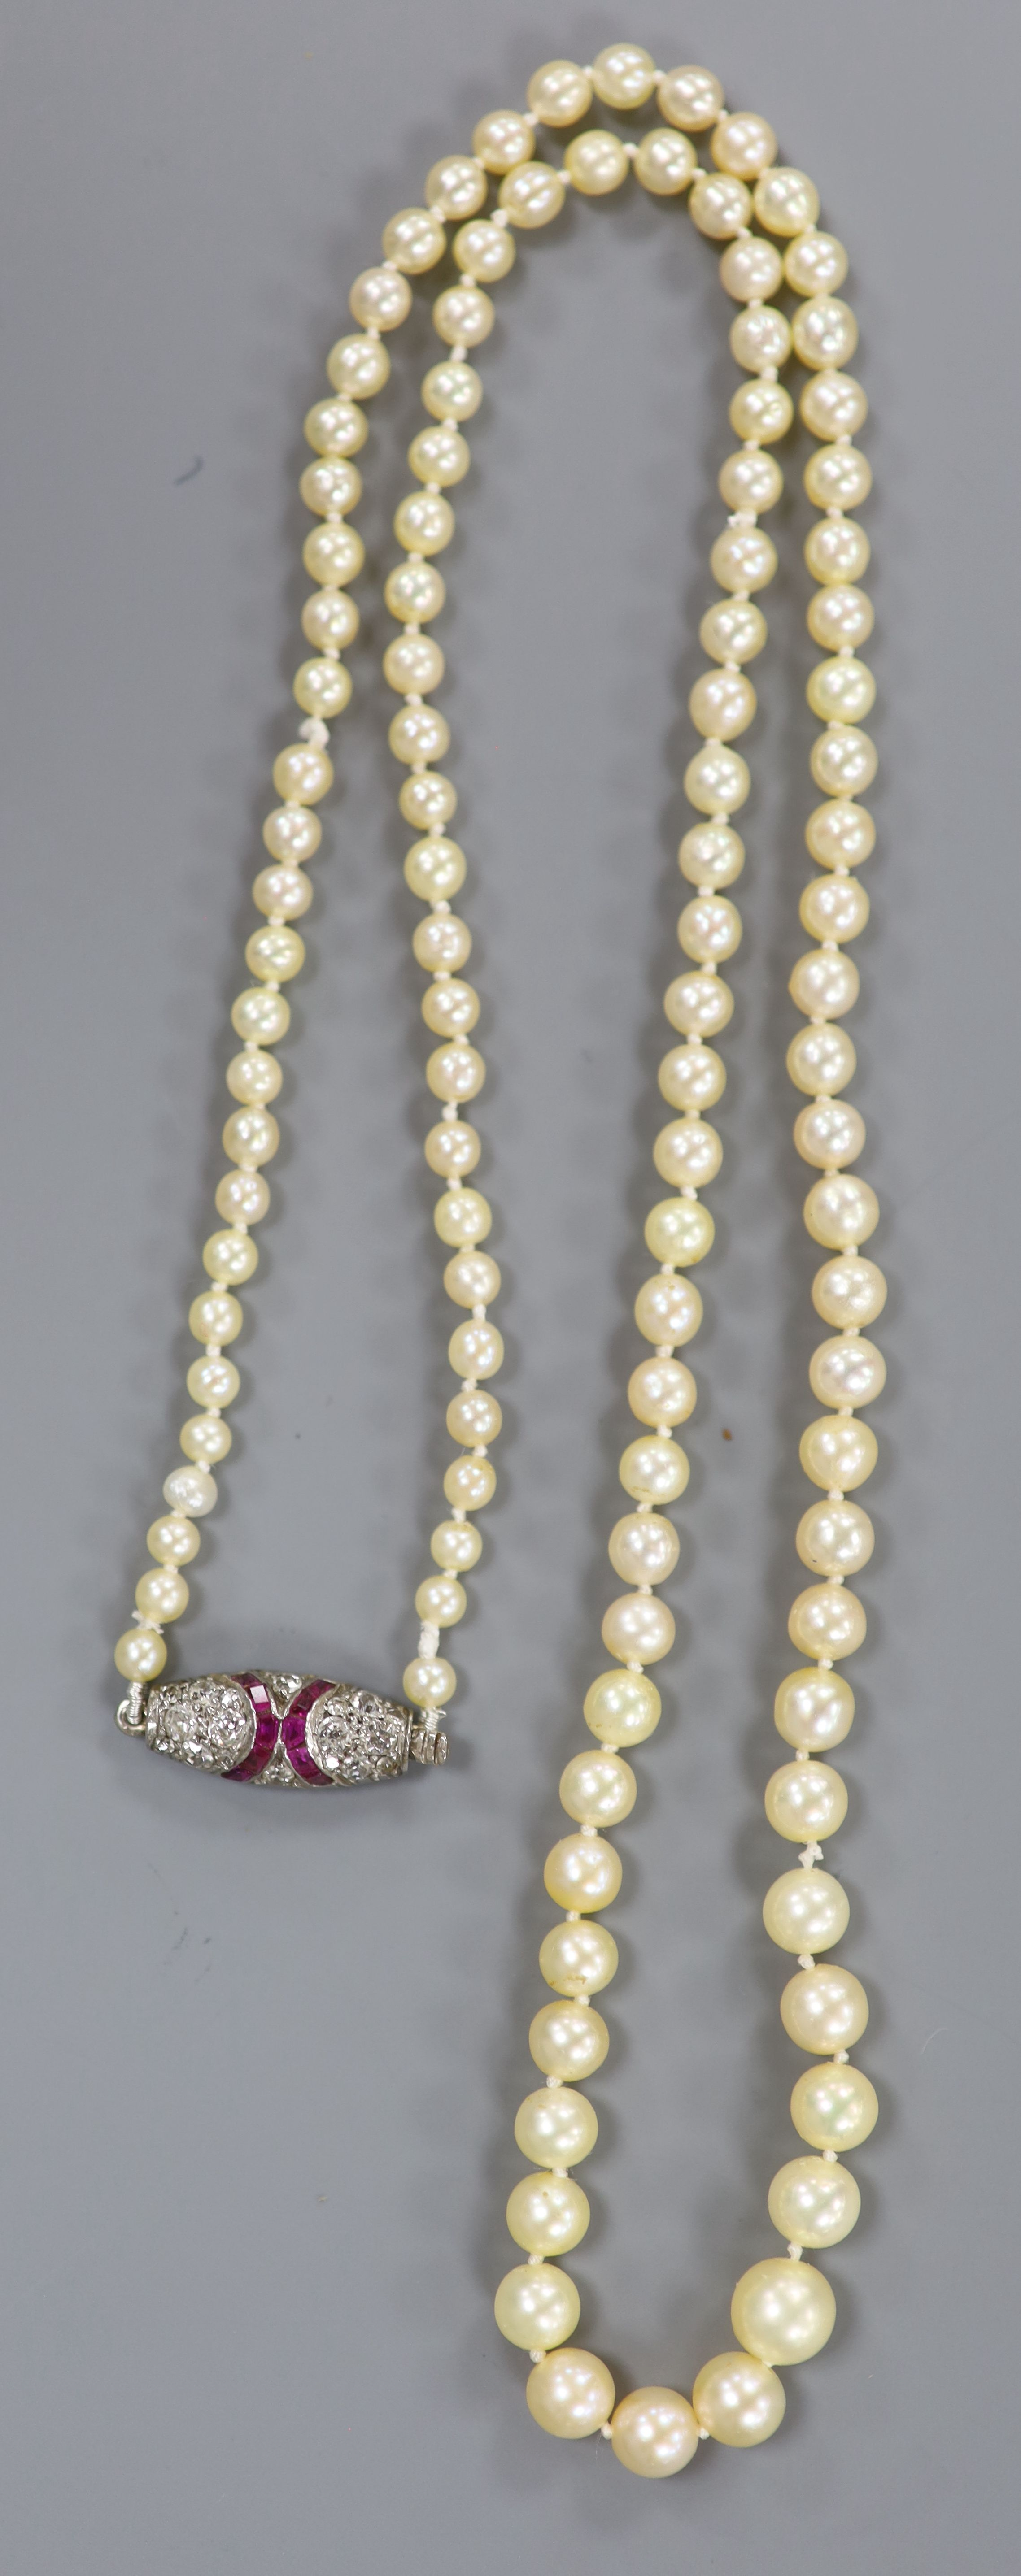 An early 20th century single strand graduated seed pearl necklace, with white metal ruby and diamond - Image 2 of 3